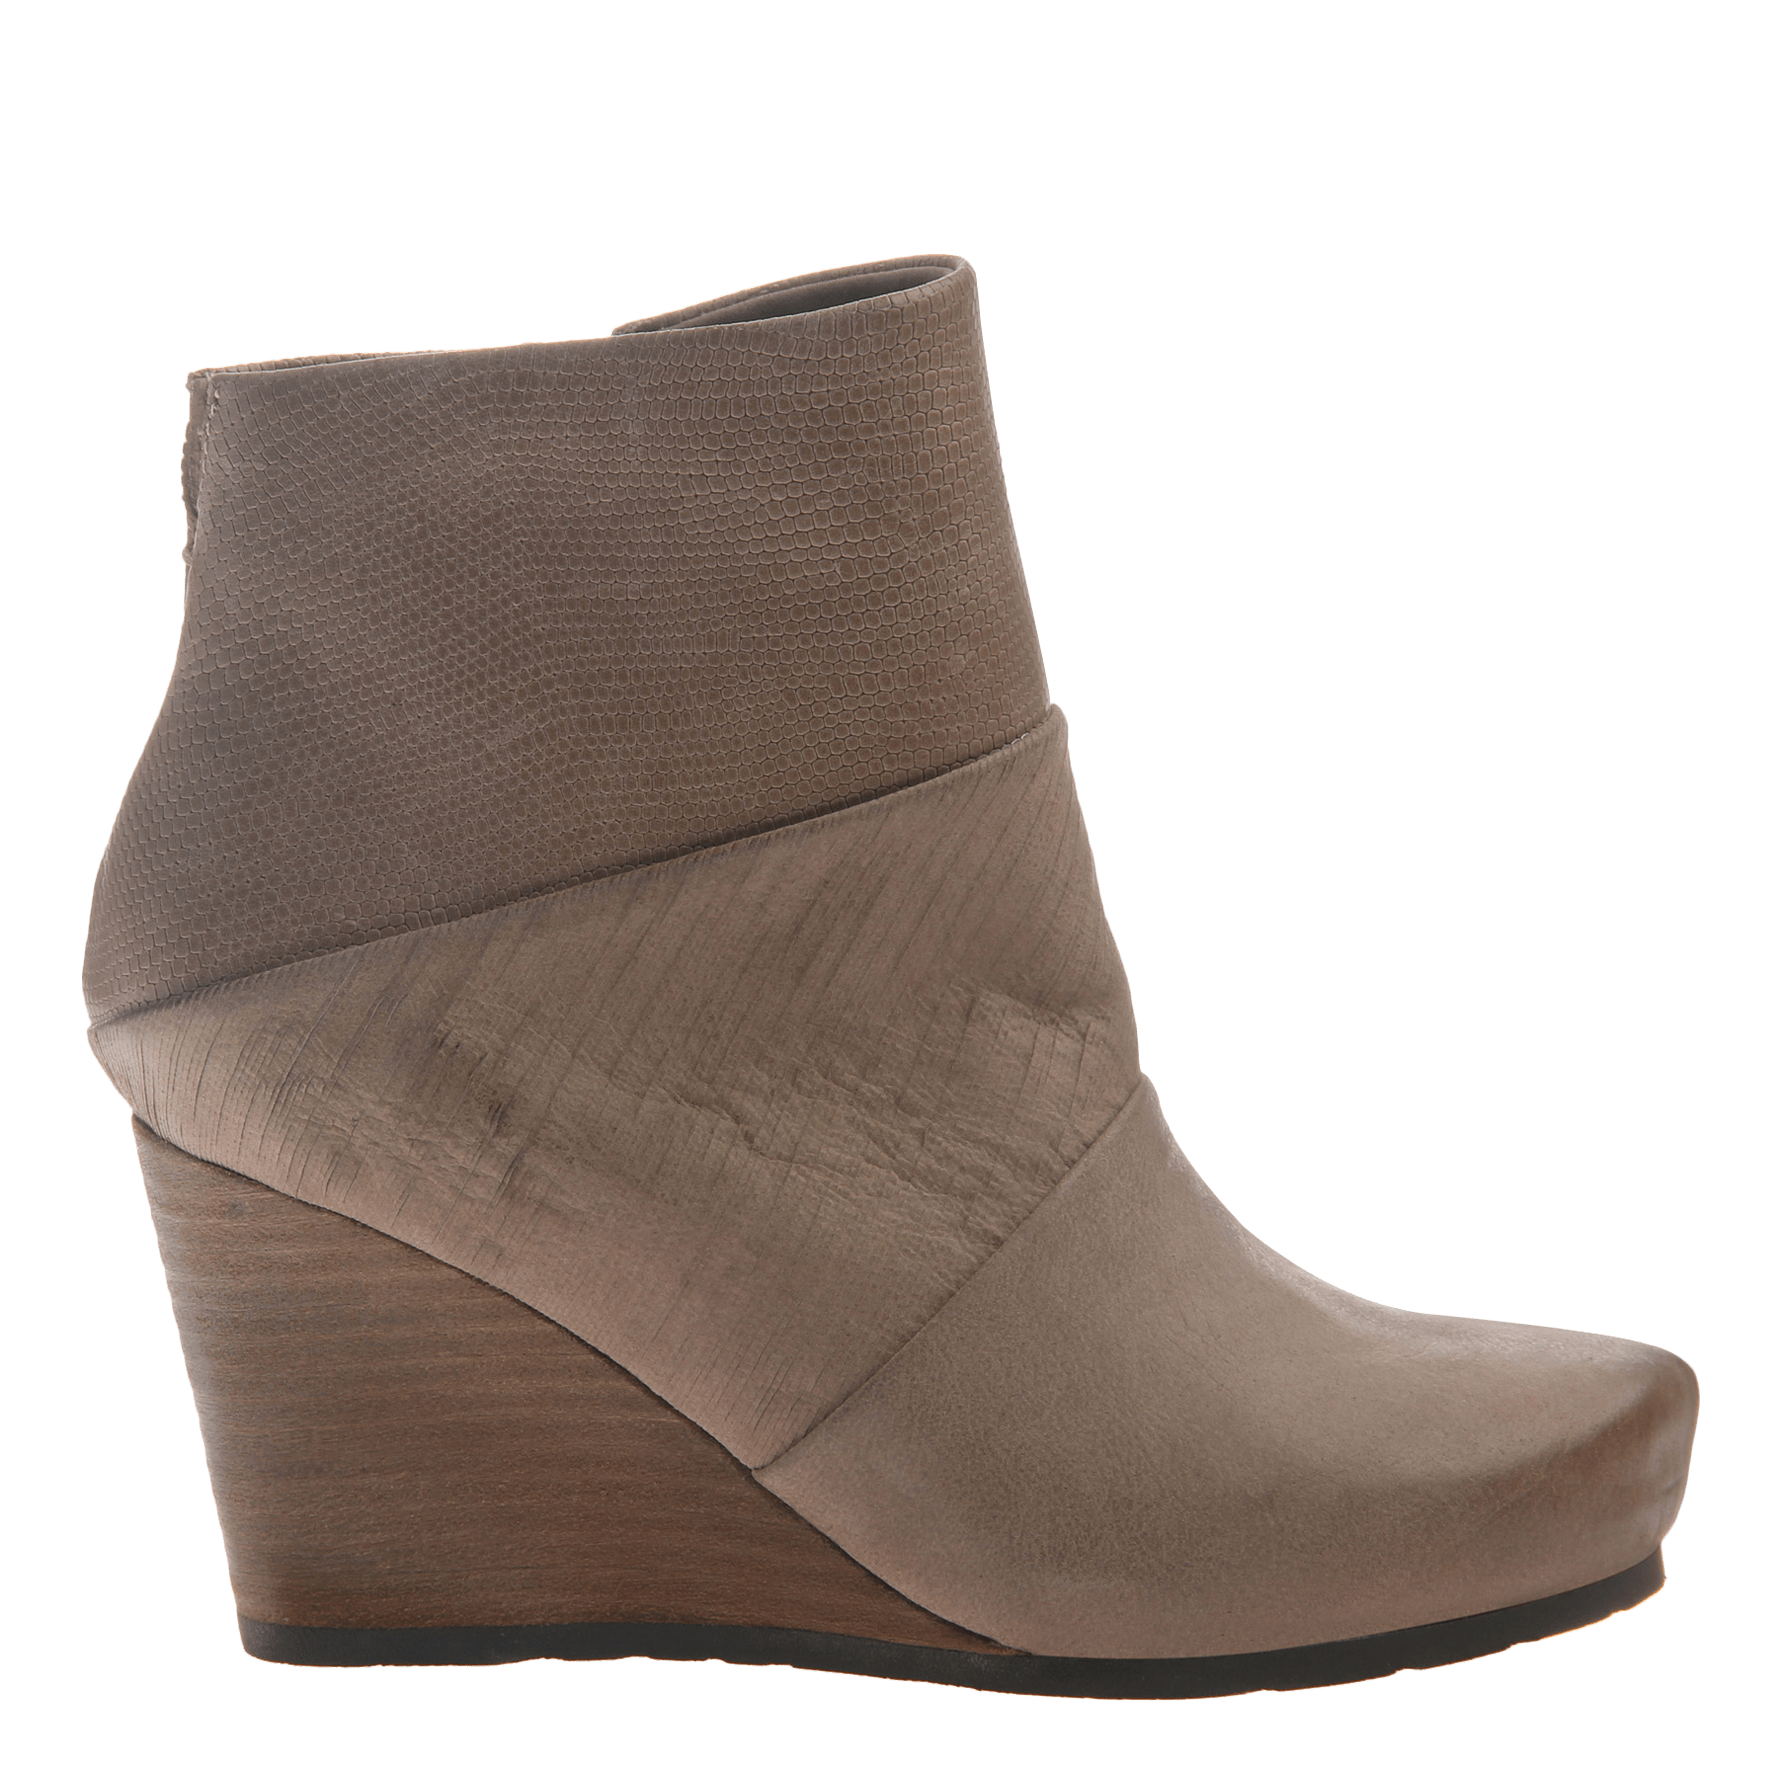 dfe0cc23f20 Dharma women s ankle boot in pecan side view